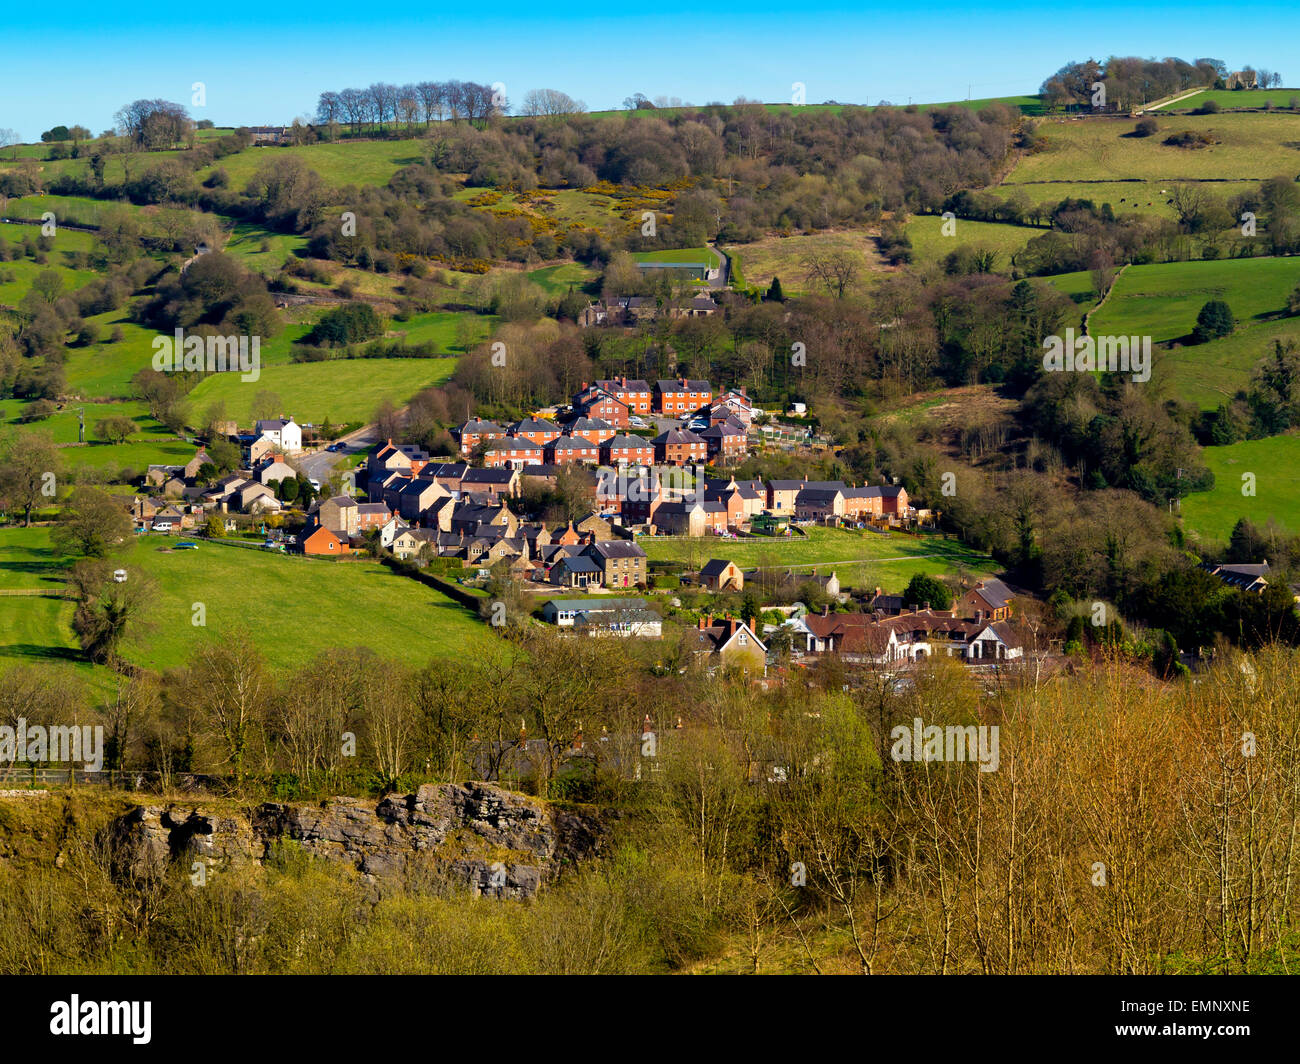 A view of rural housing near Wirksworth in the Derbyshire Dales Peak District England UK - Stock Image